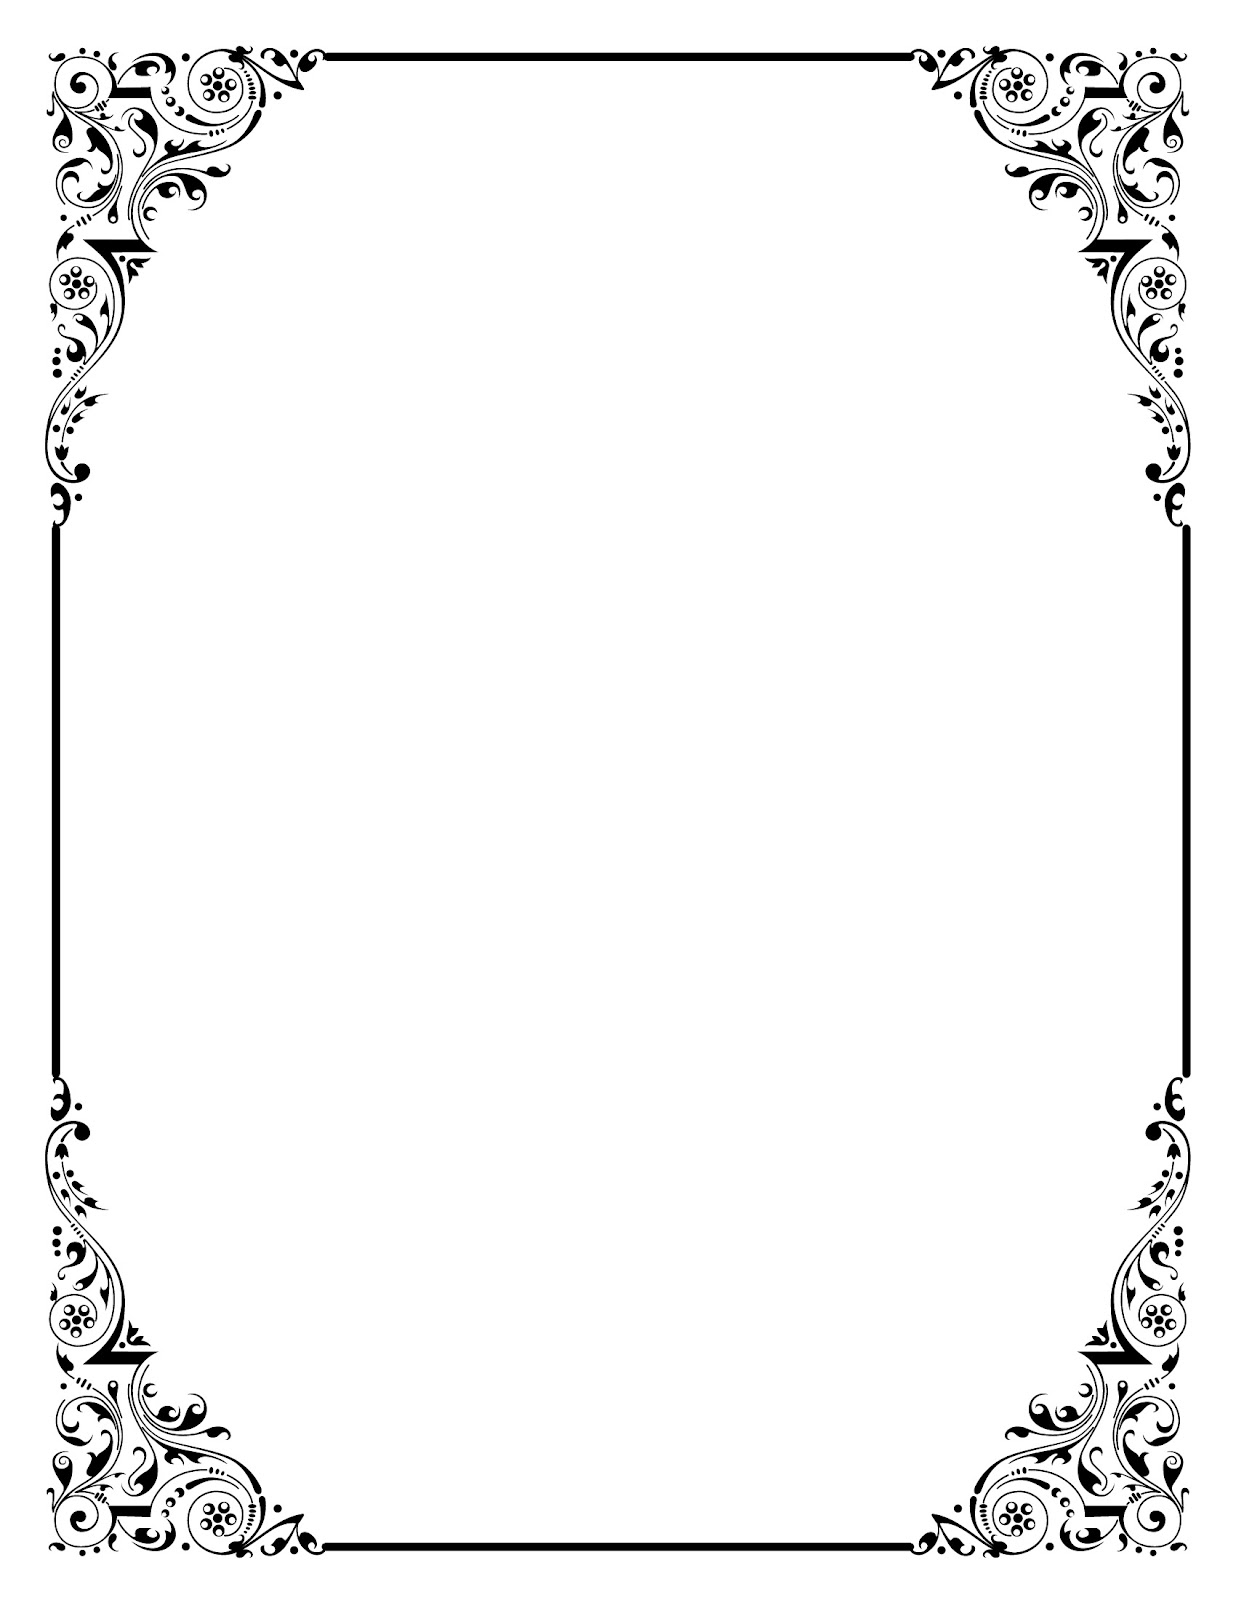 Clip art images cliparting. Free picture frame clipart